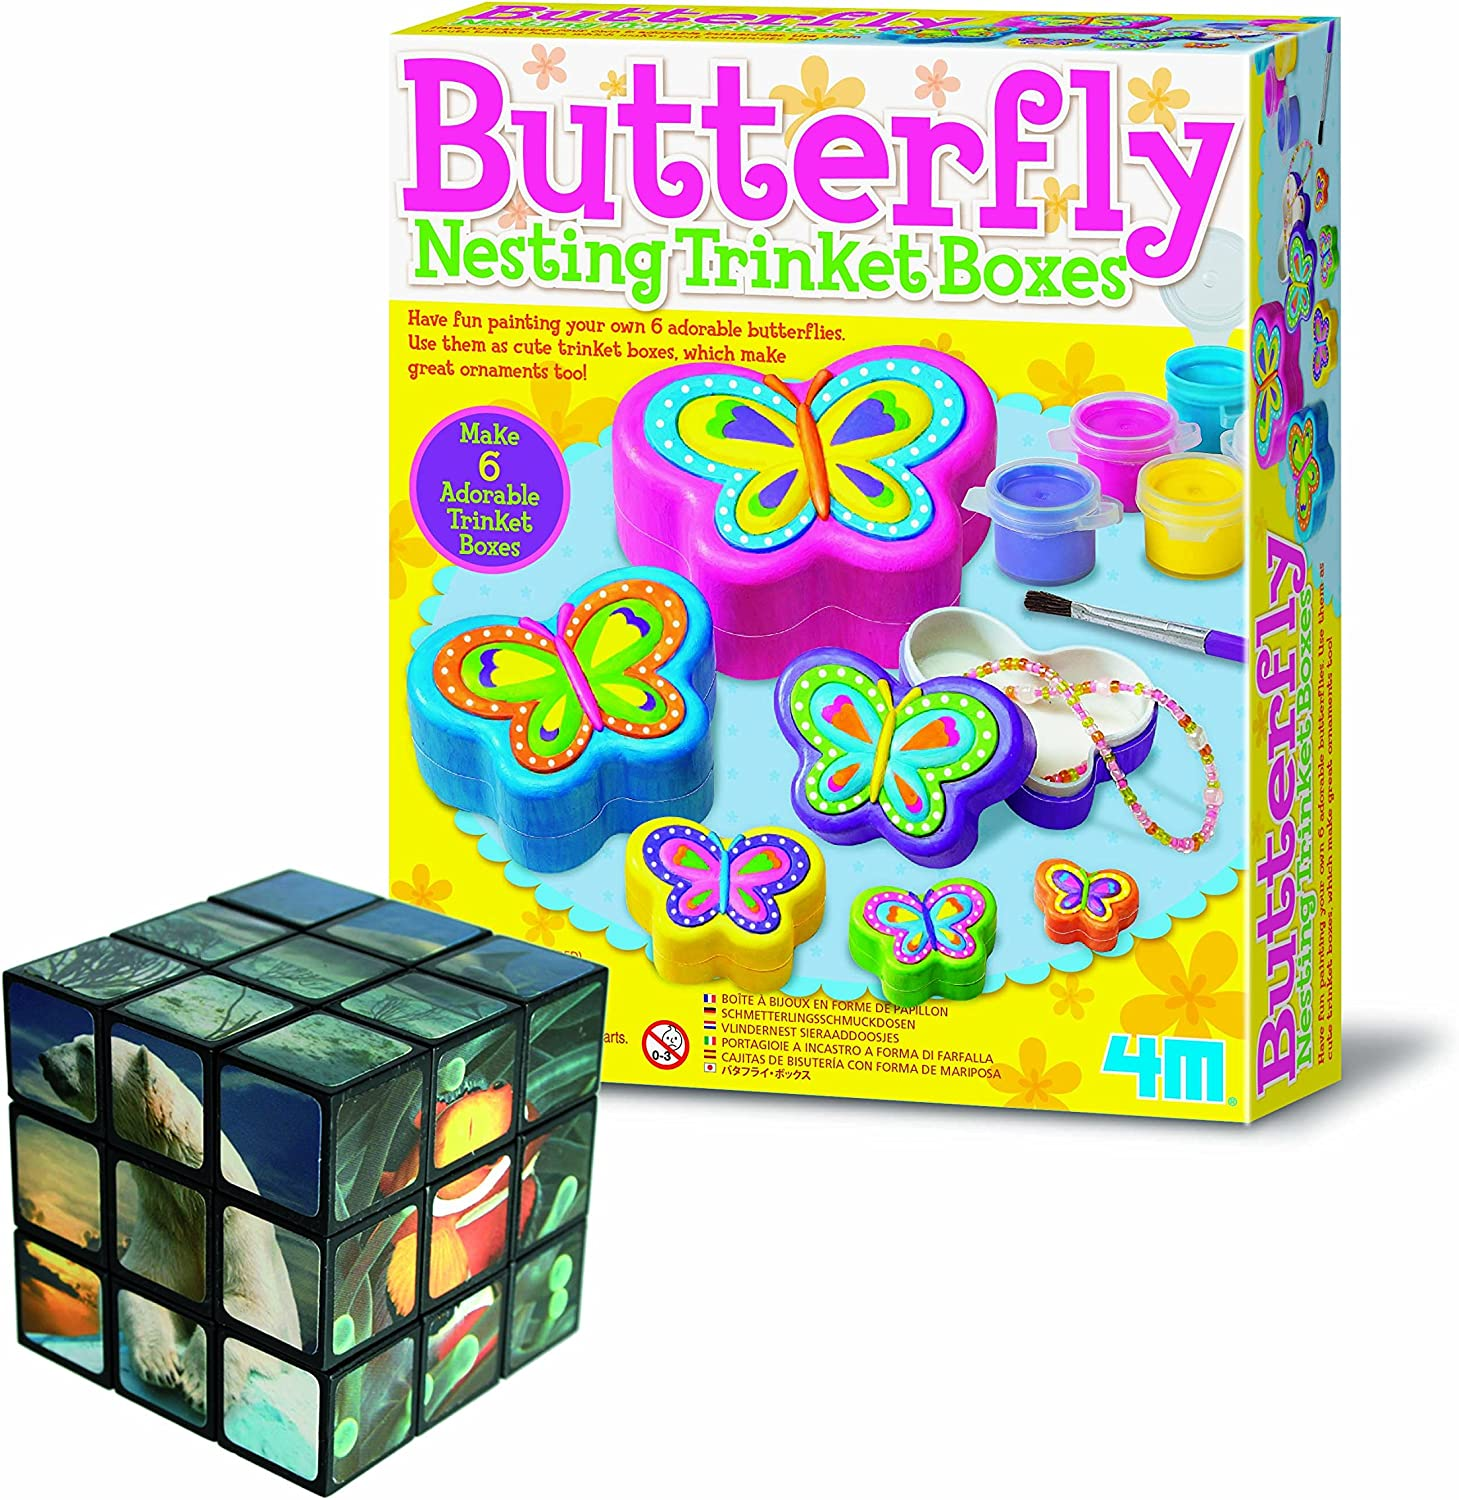 Gift Present Christmas Xmas Stocking Filler Birthday Toys Games Girls Children Best Value Make Your Own Butterfly Nesting Trinket Boxes Arts Crafts /& Creative FREE Sealife Puzzle Thinking Set